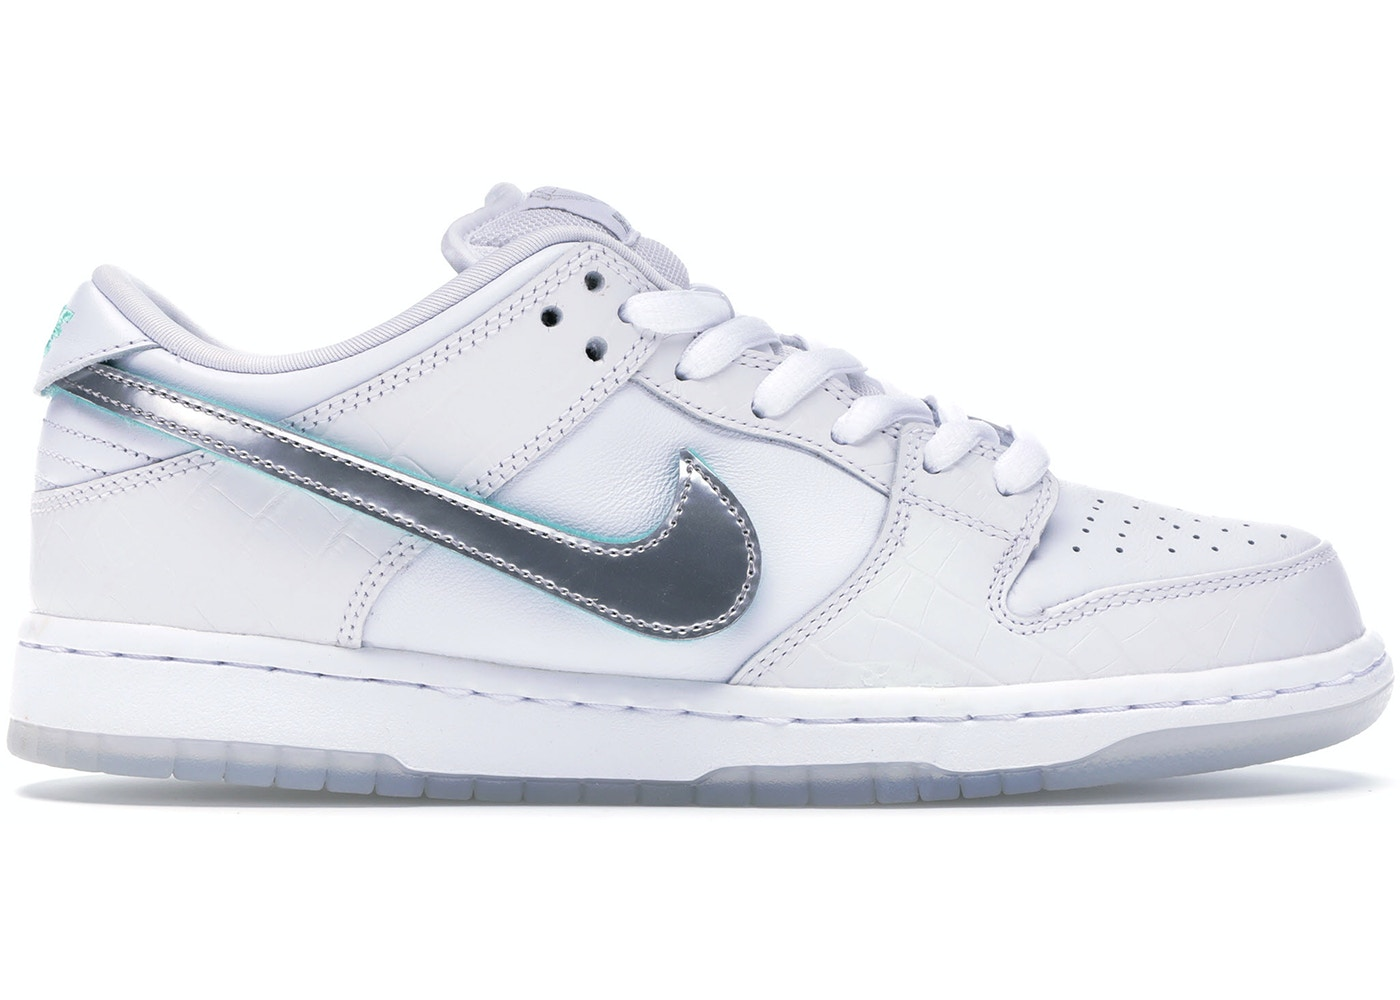 meet afb94 219f9 Nike SB Dunk Low Diamond Supply Co White Diamond